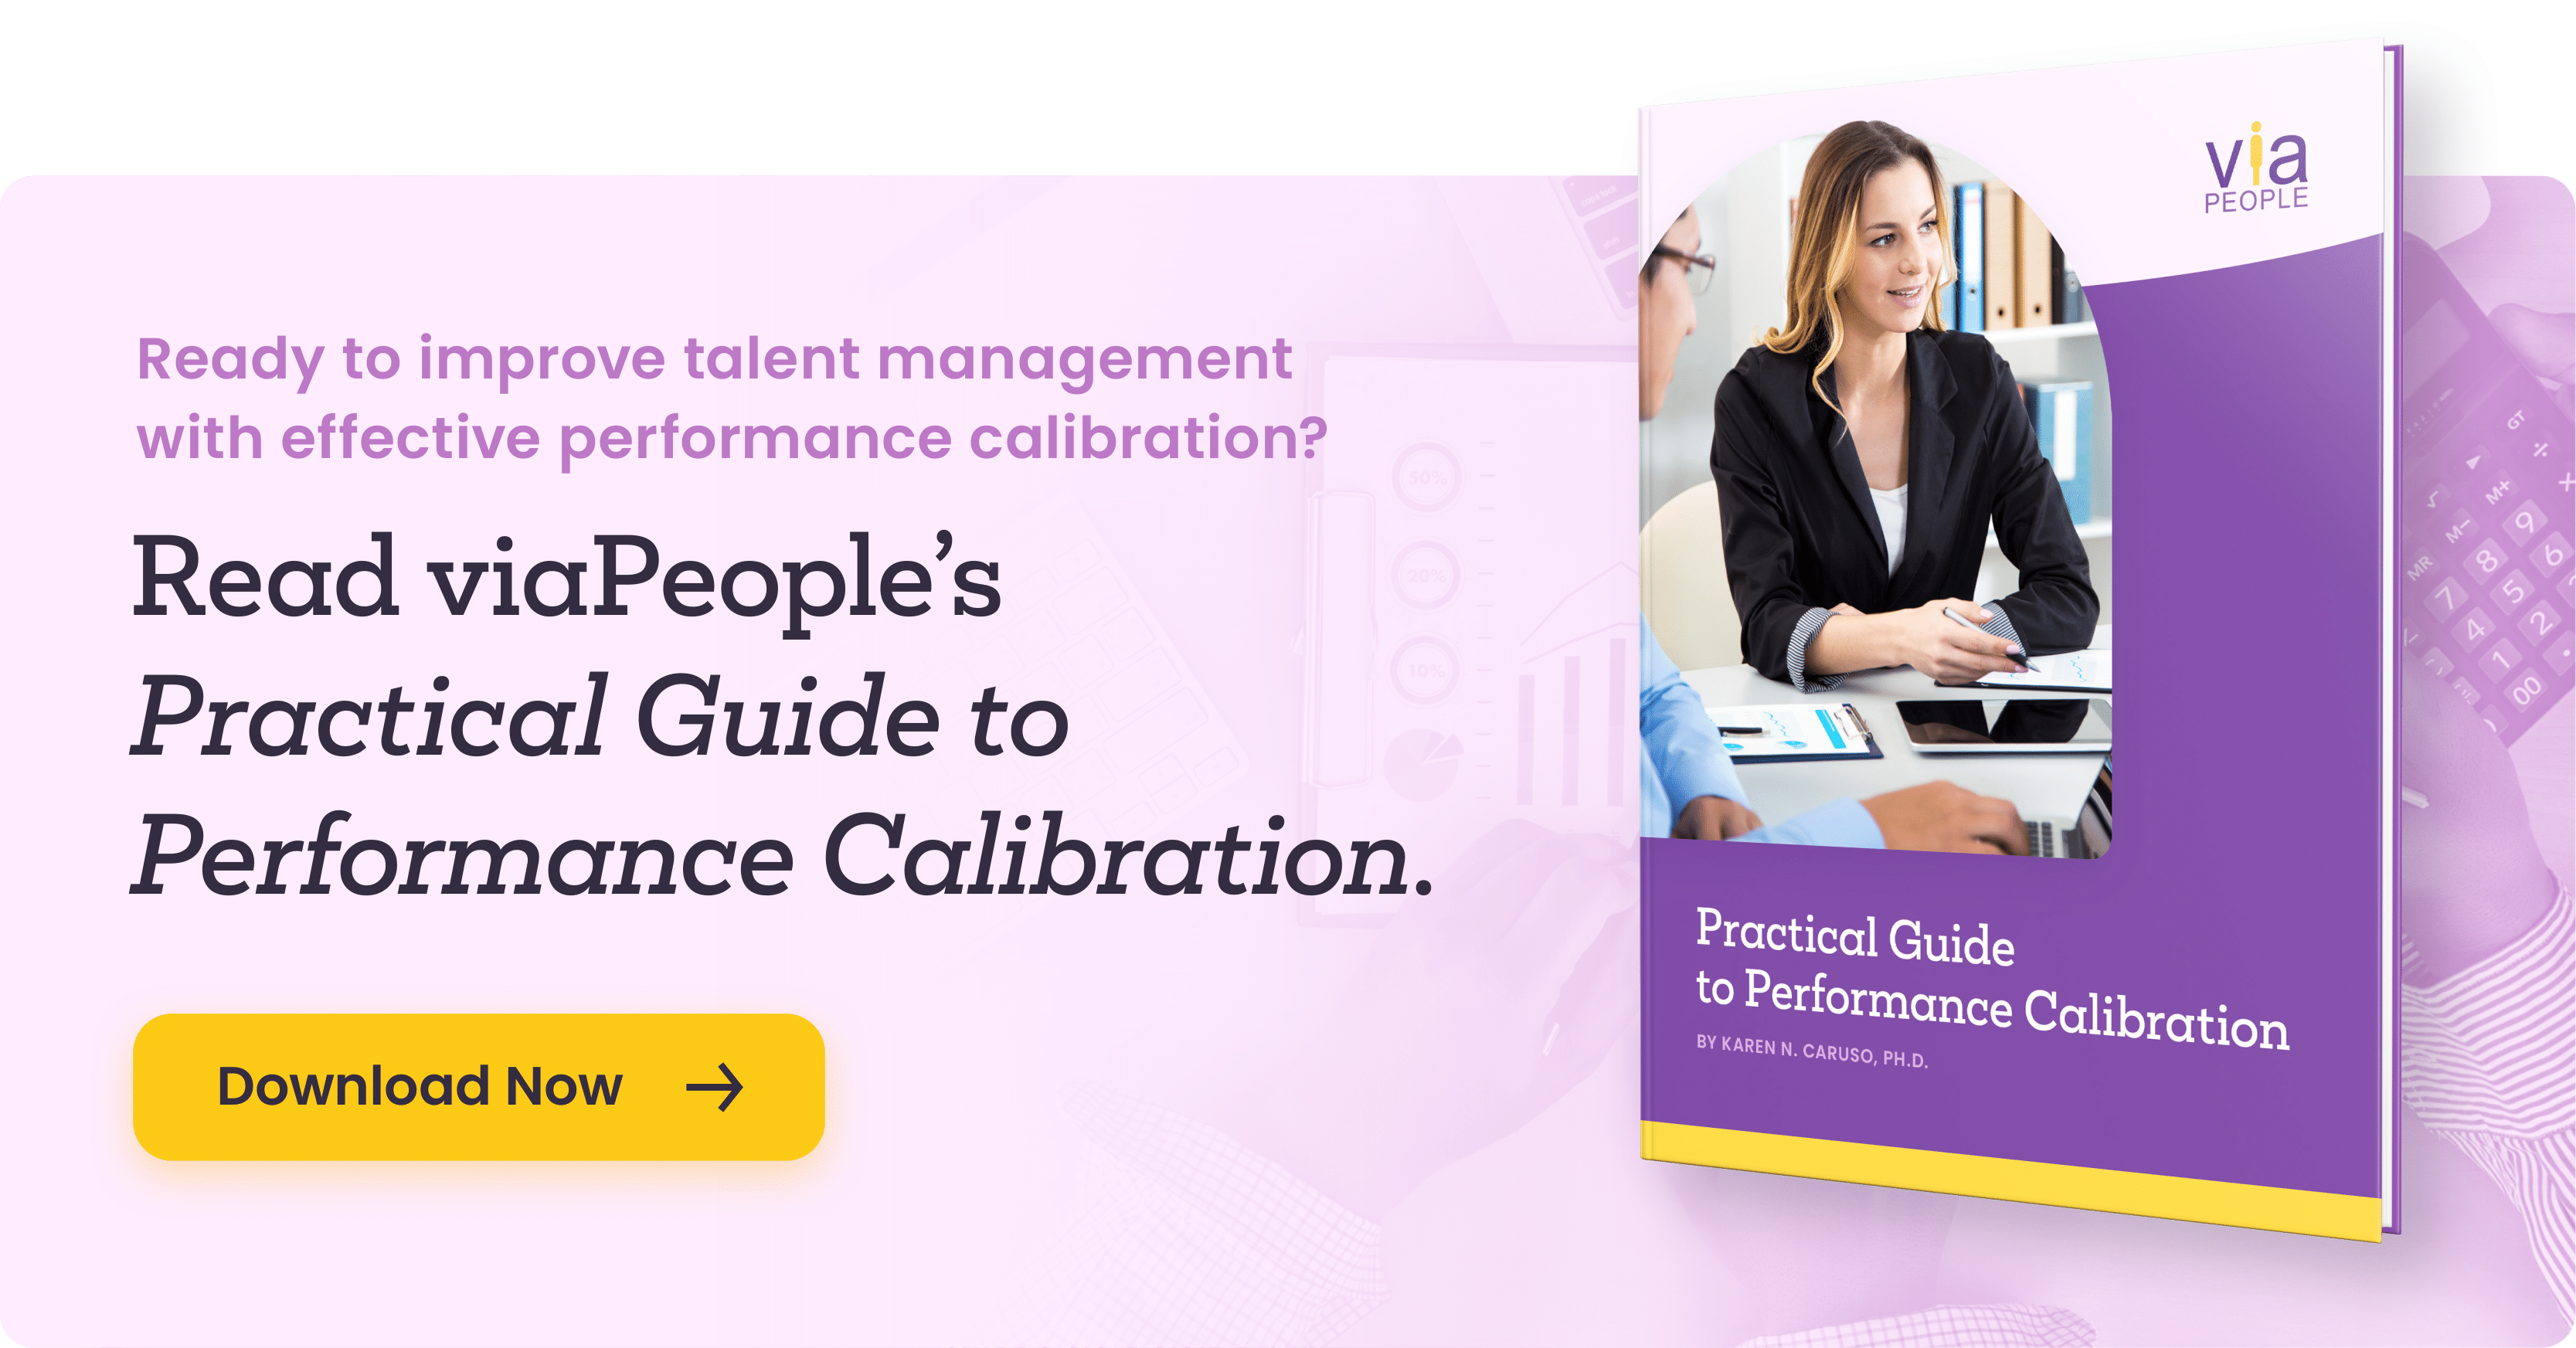 Click here to Read viaPeople's Practical Guide to Performance Calibration